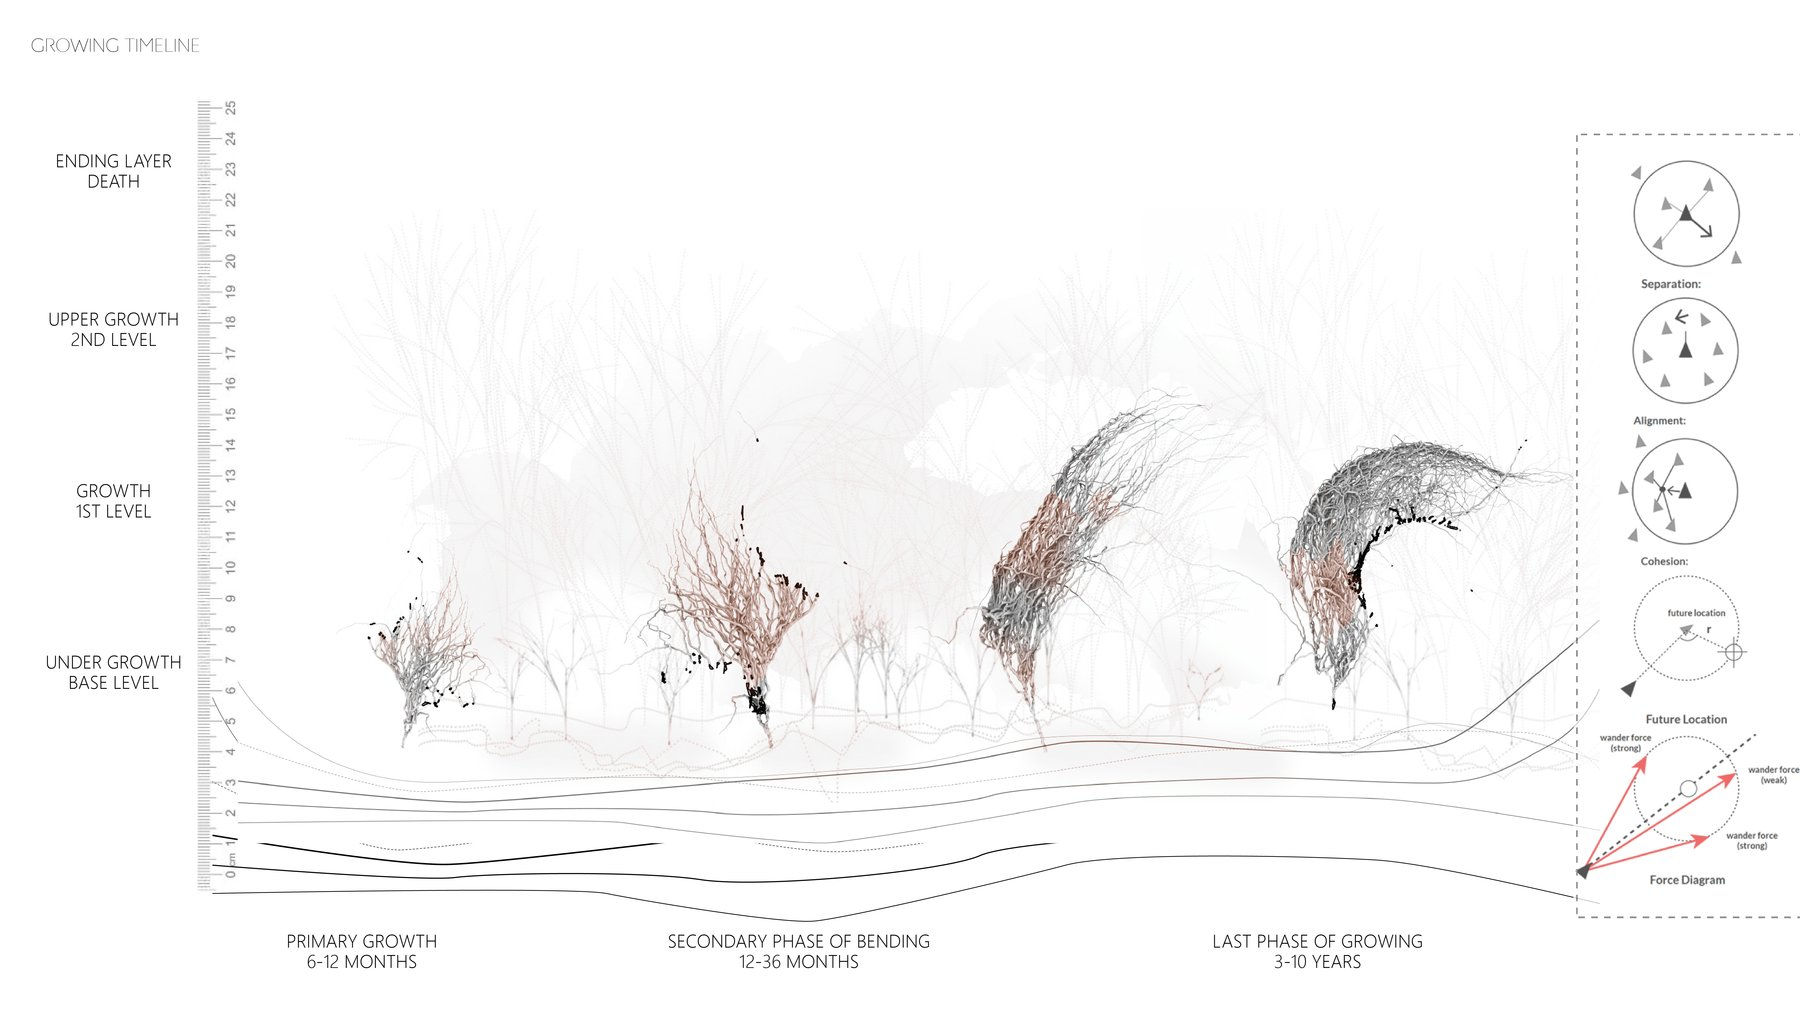 Biotope Generative System - Strategy for integrating Contemporary Housing Community with Nature in Florida